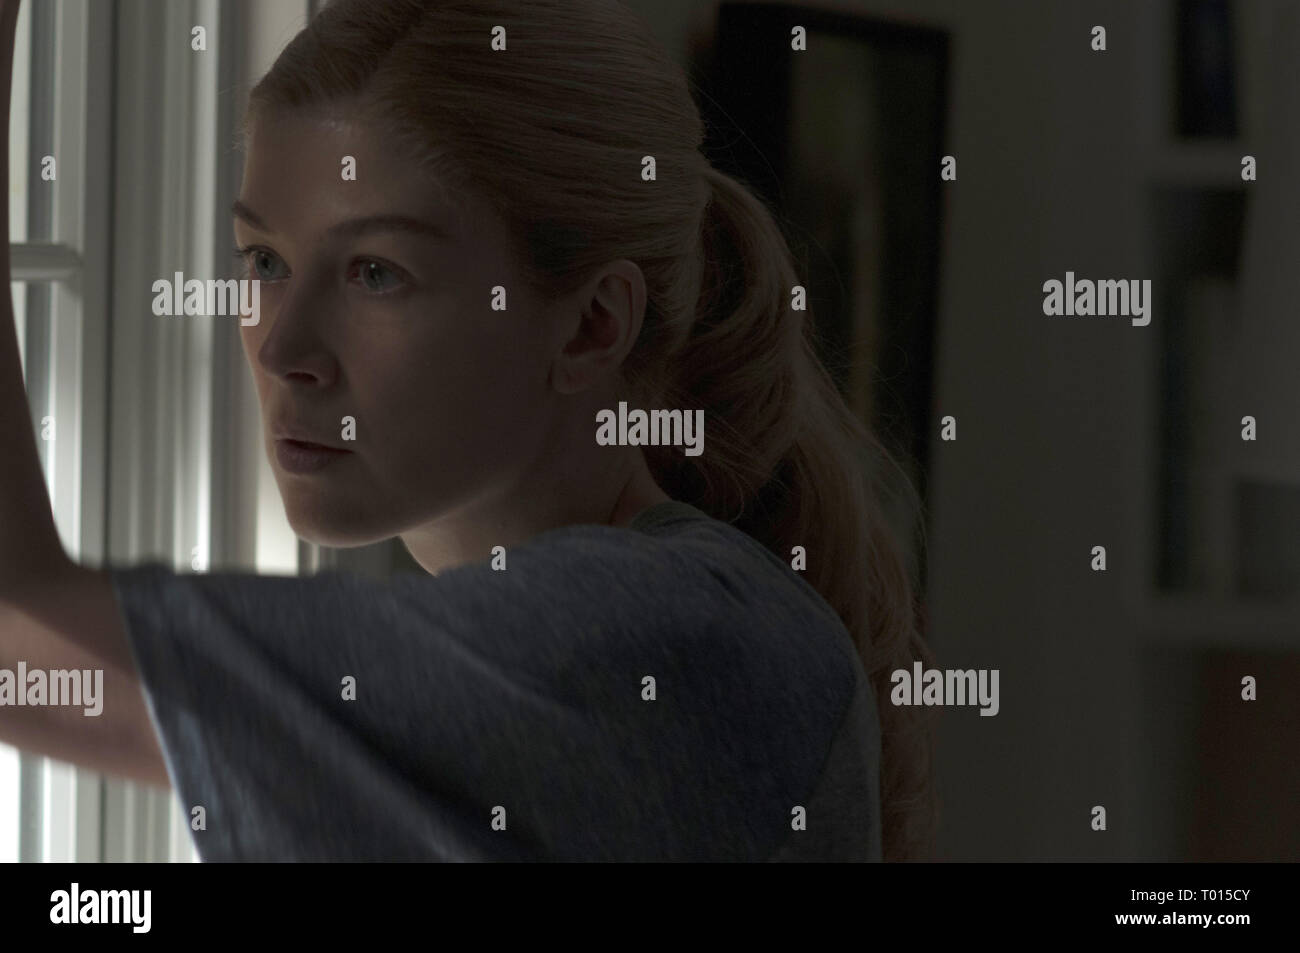 ROSAMUND PIKE, GONE GIRL, 2014 - Stock Image